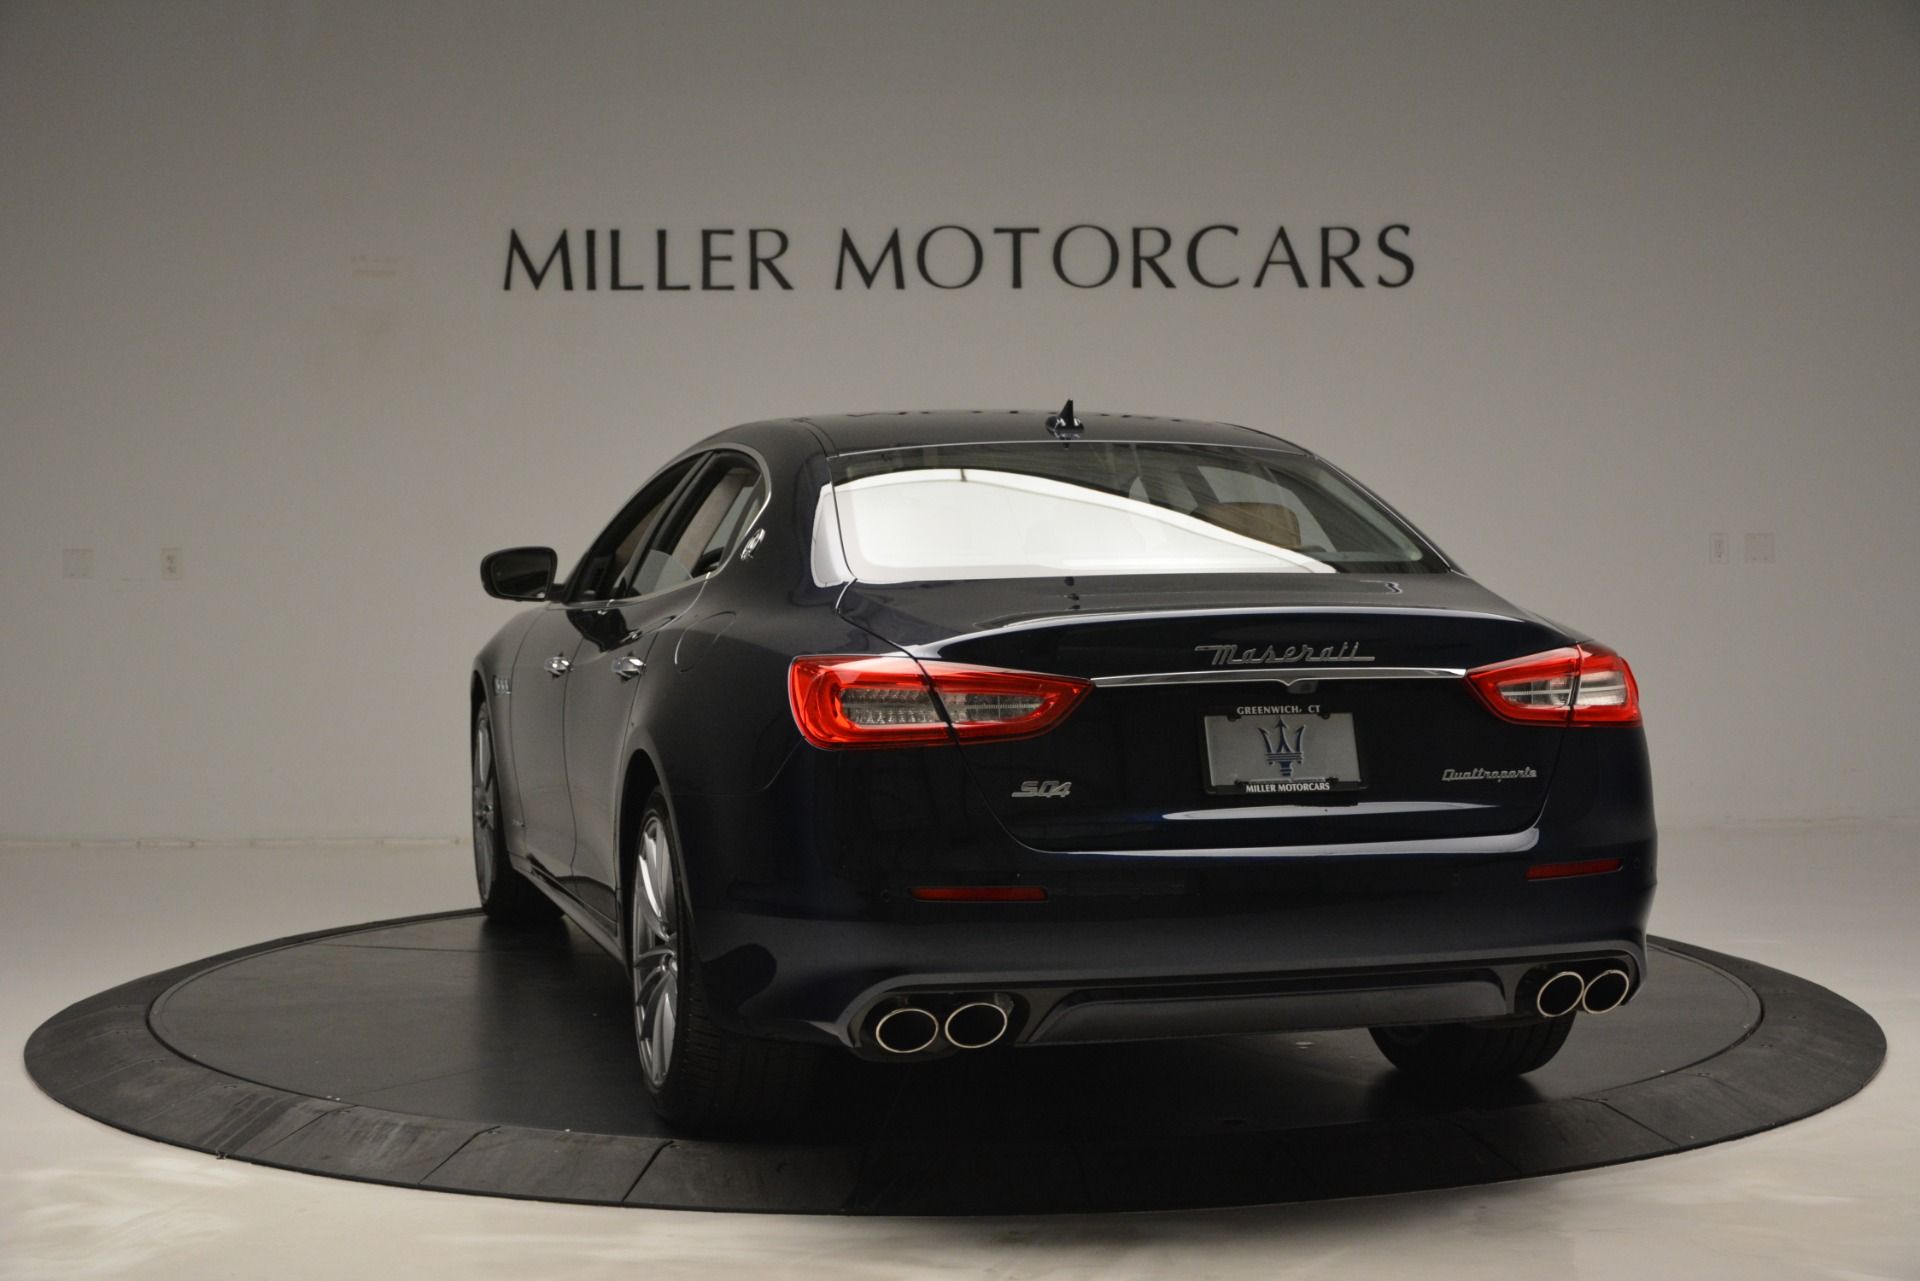 New 2019 Maserati Quattroporte S Q4 GranLusso Edizione Nobile For Sale In Greenwich, CT 2898_p9